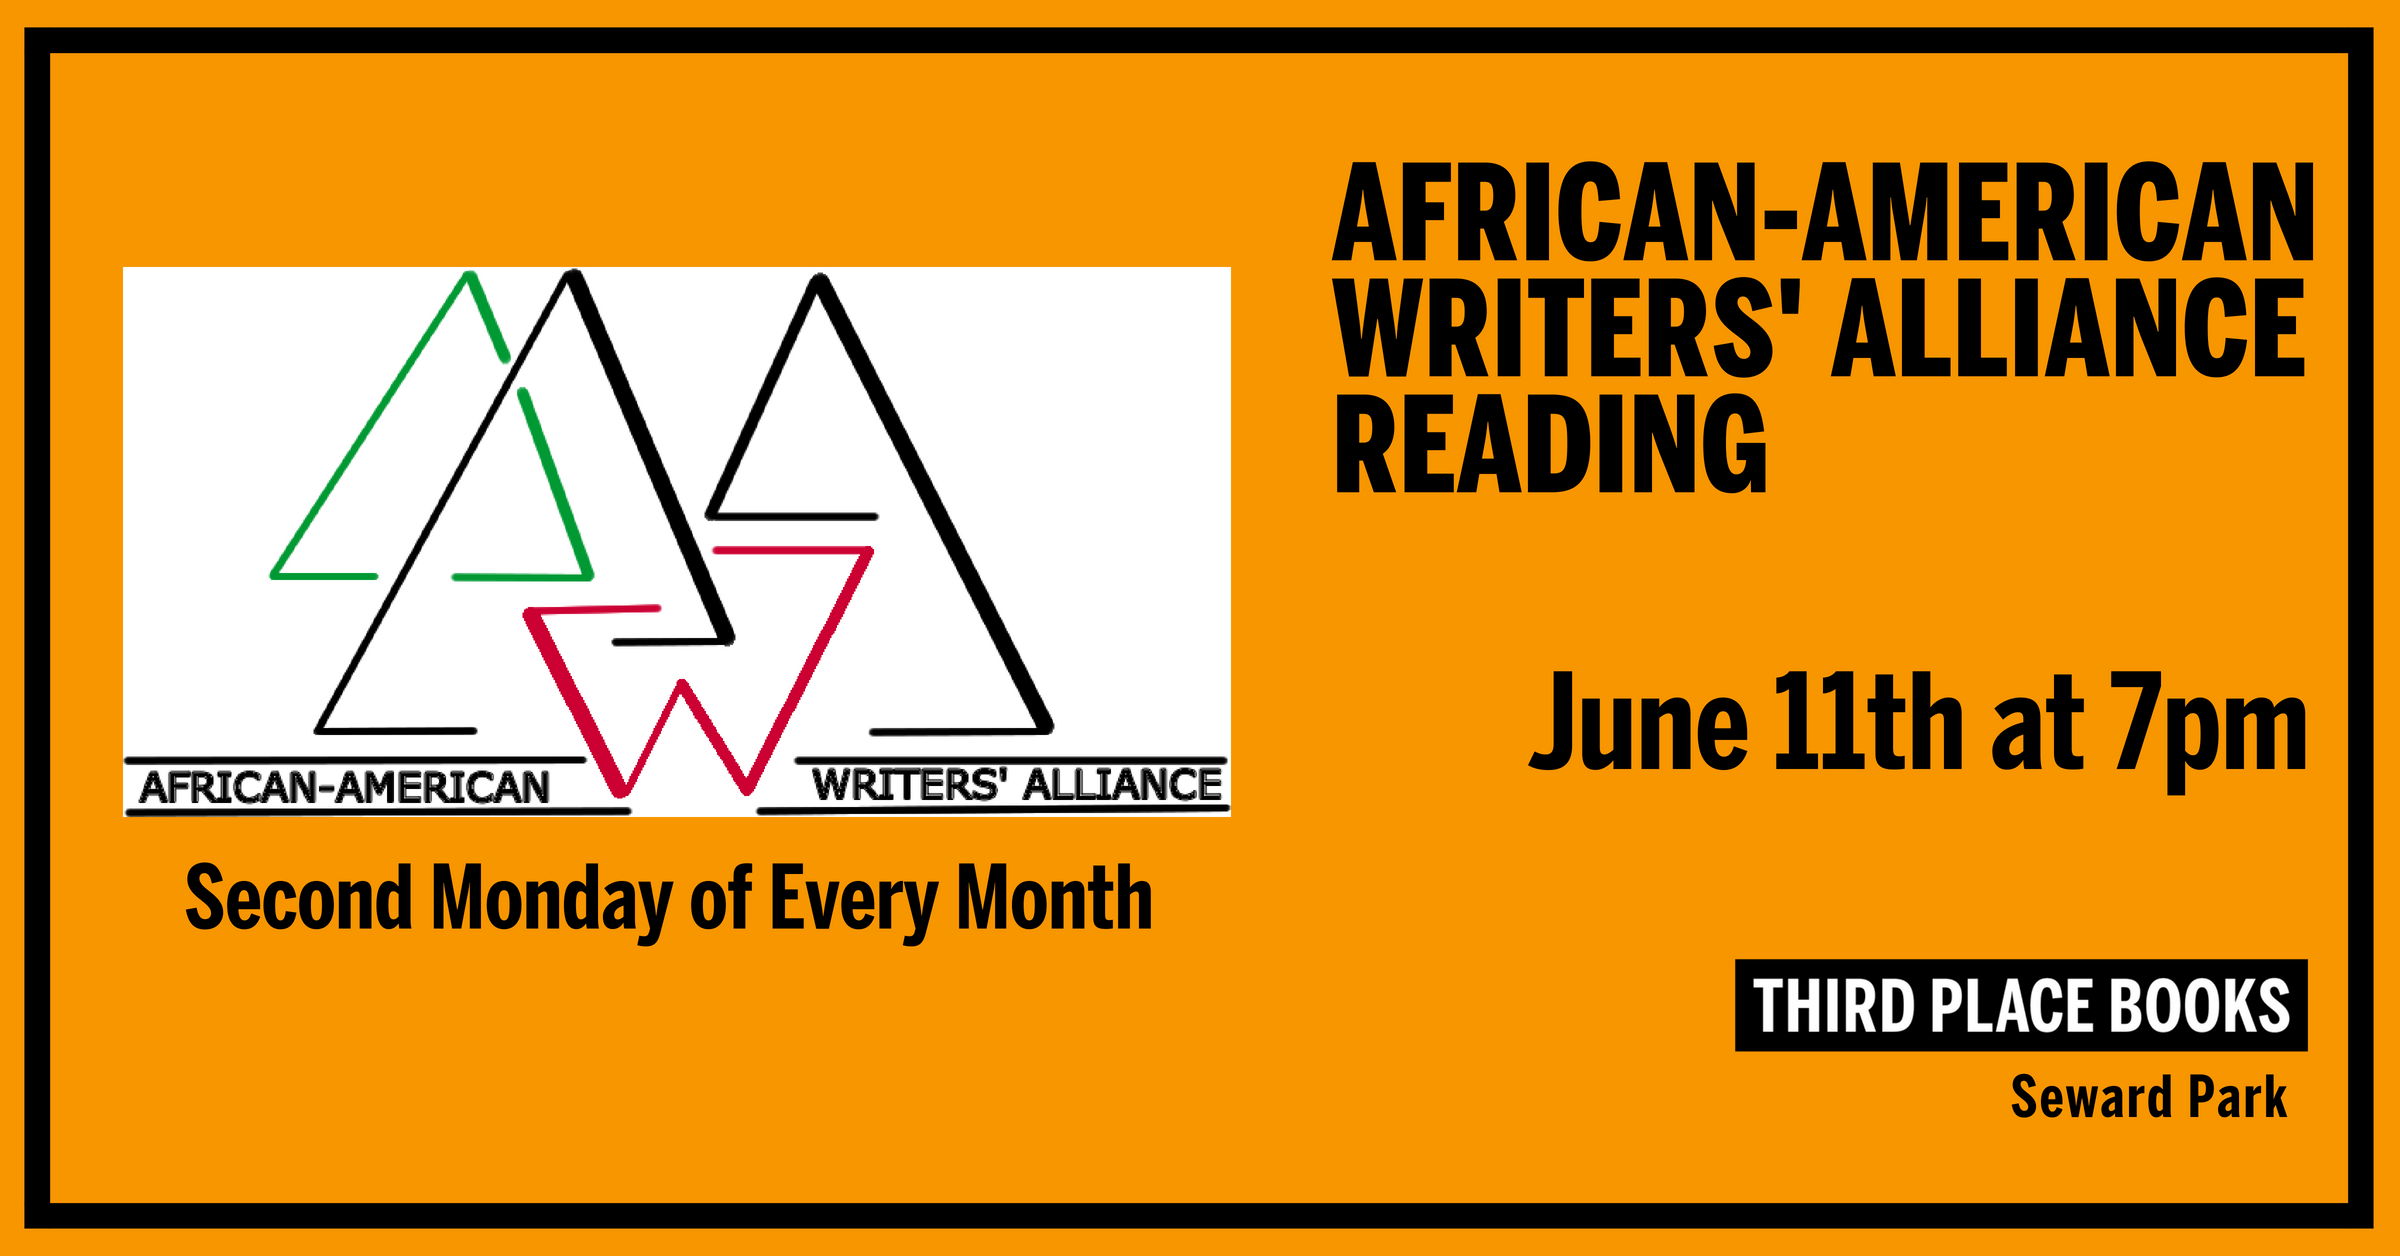 African-American Writers' Alliance Reading on June 11th at 7pm